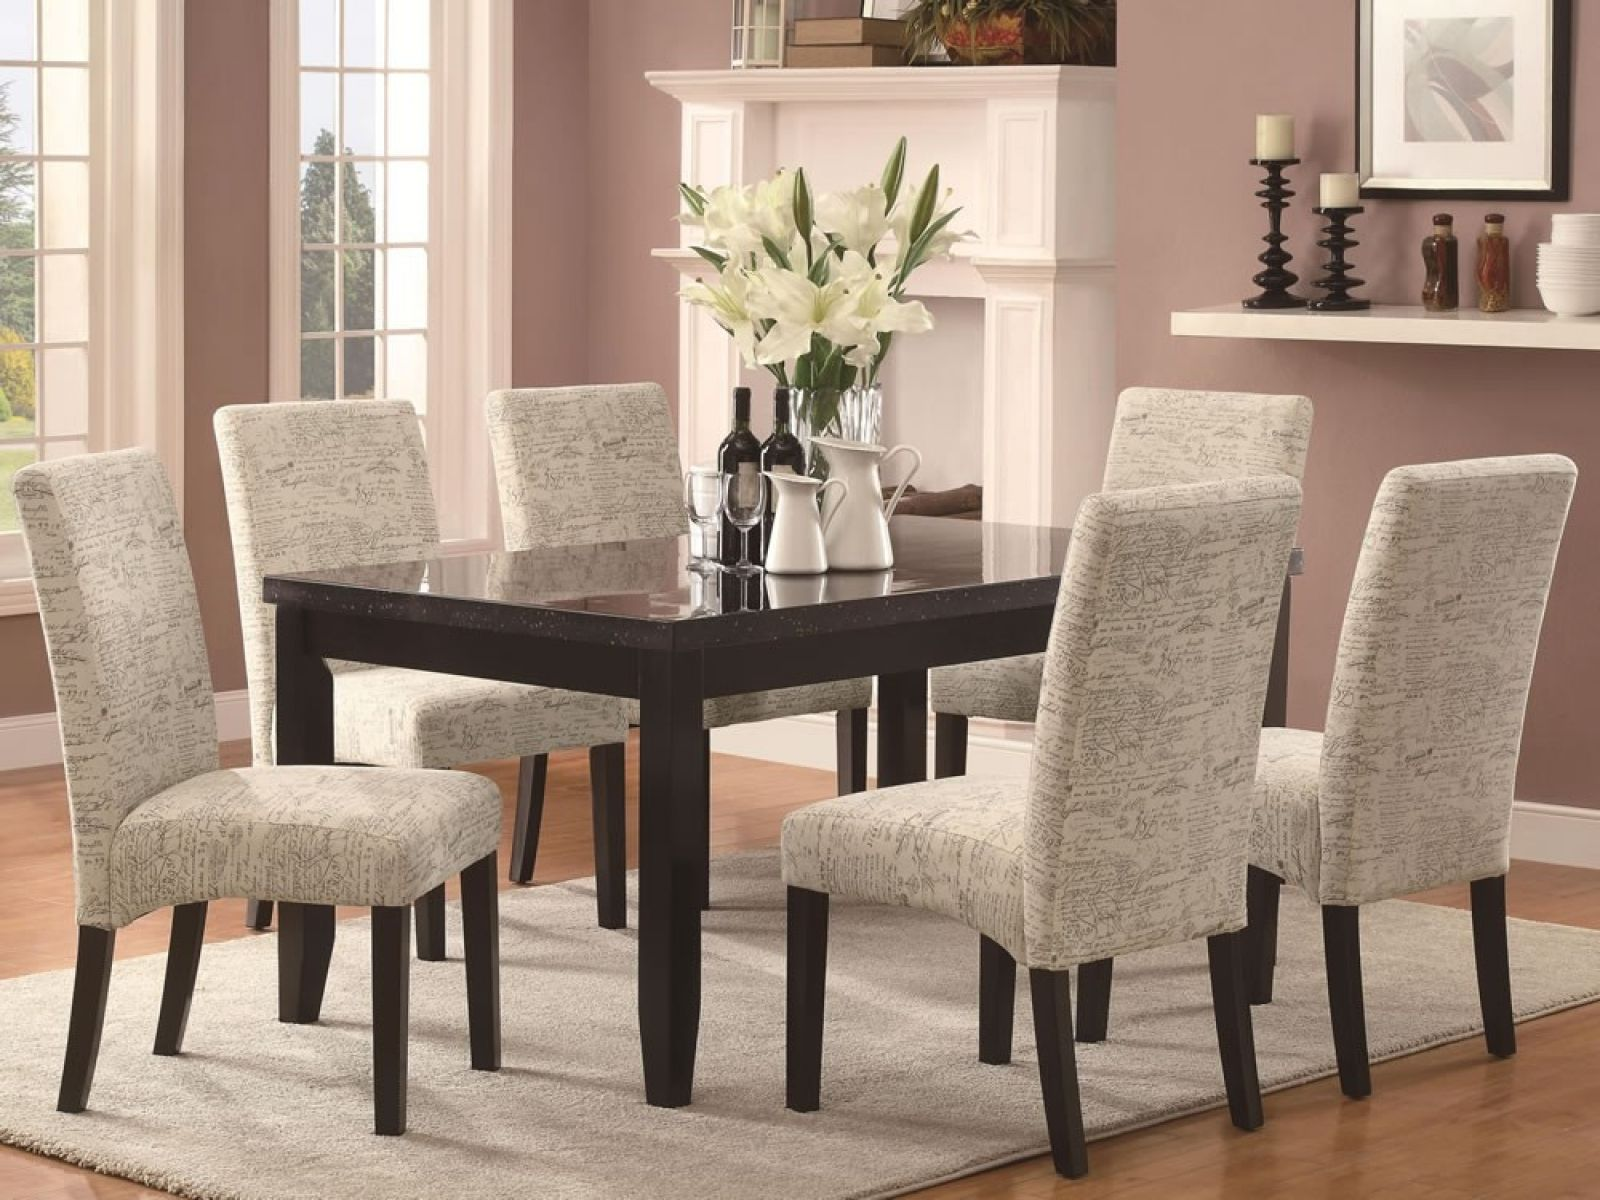 Padded Dining Room Chairs Furniture Fabric